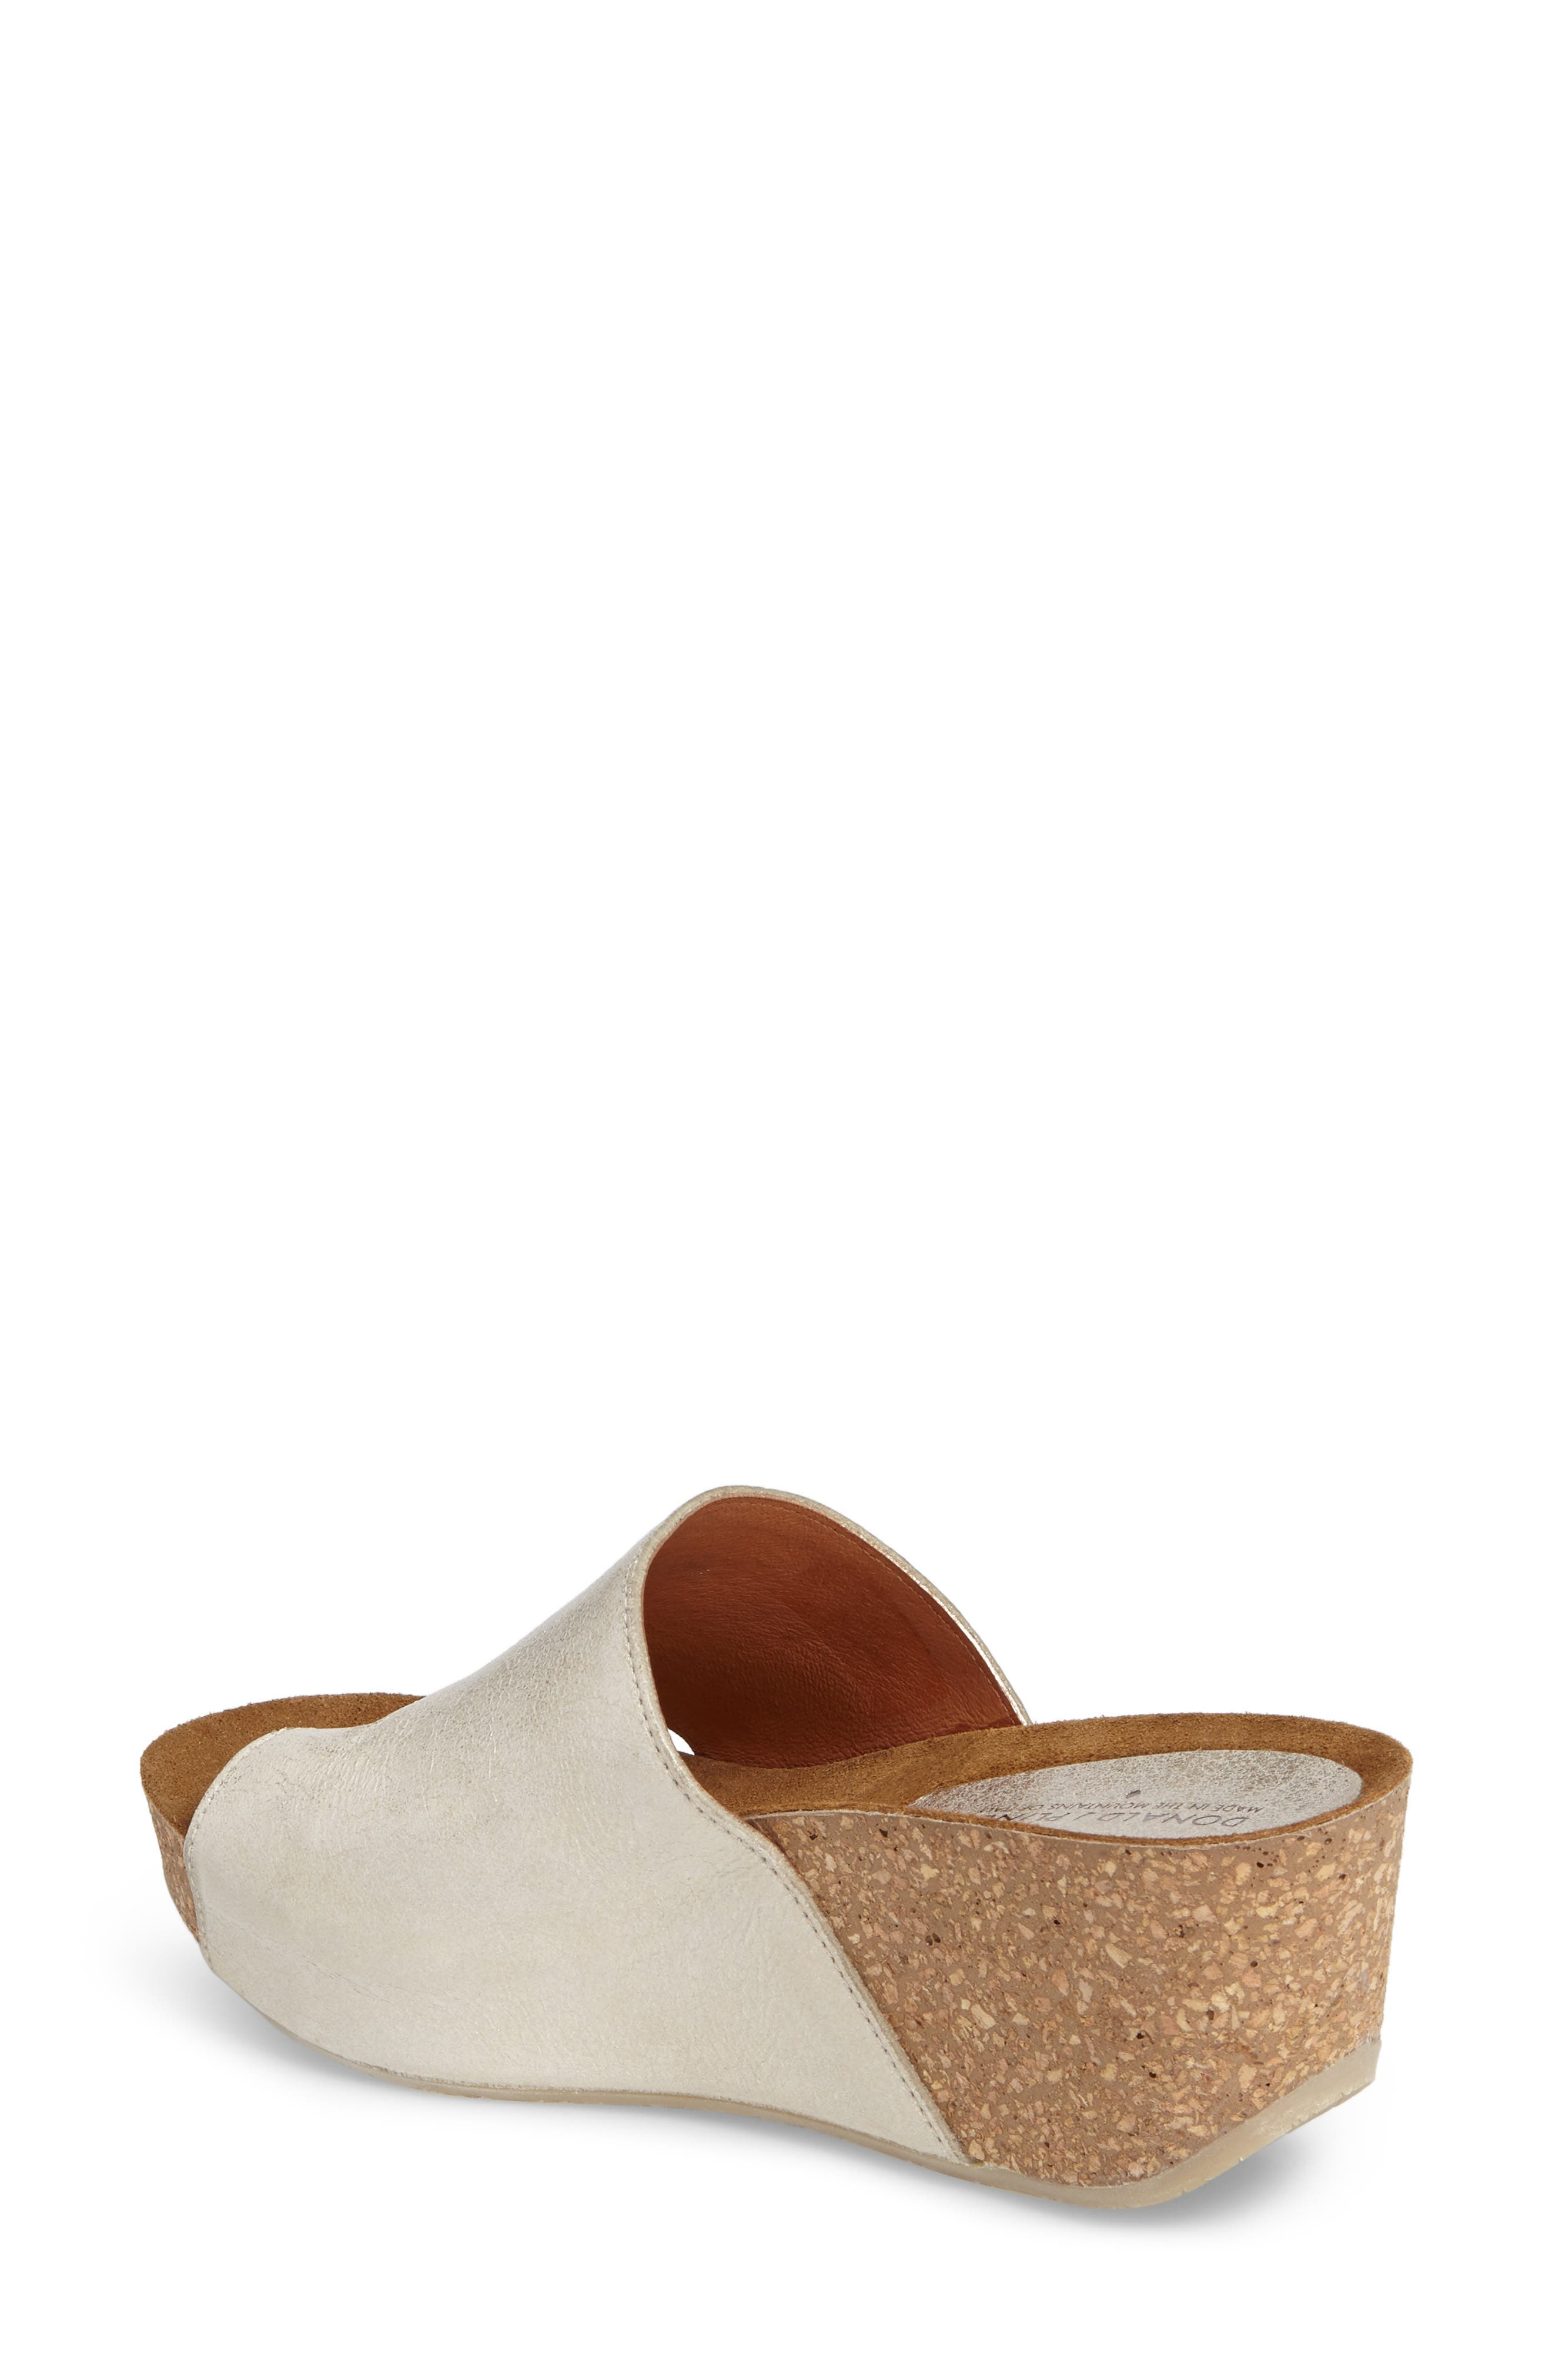 Donald J Pliner Ginie Platform Wedge Sandal,                             Alternate thumbnail 15, color,